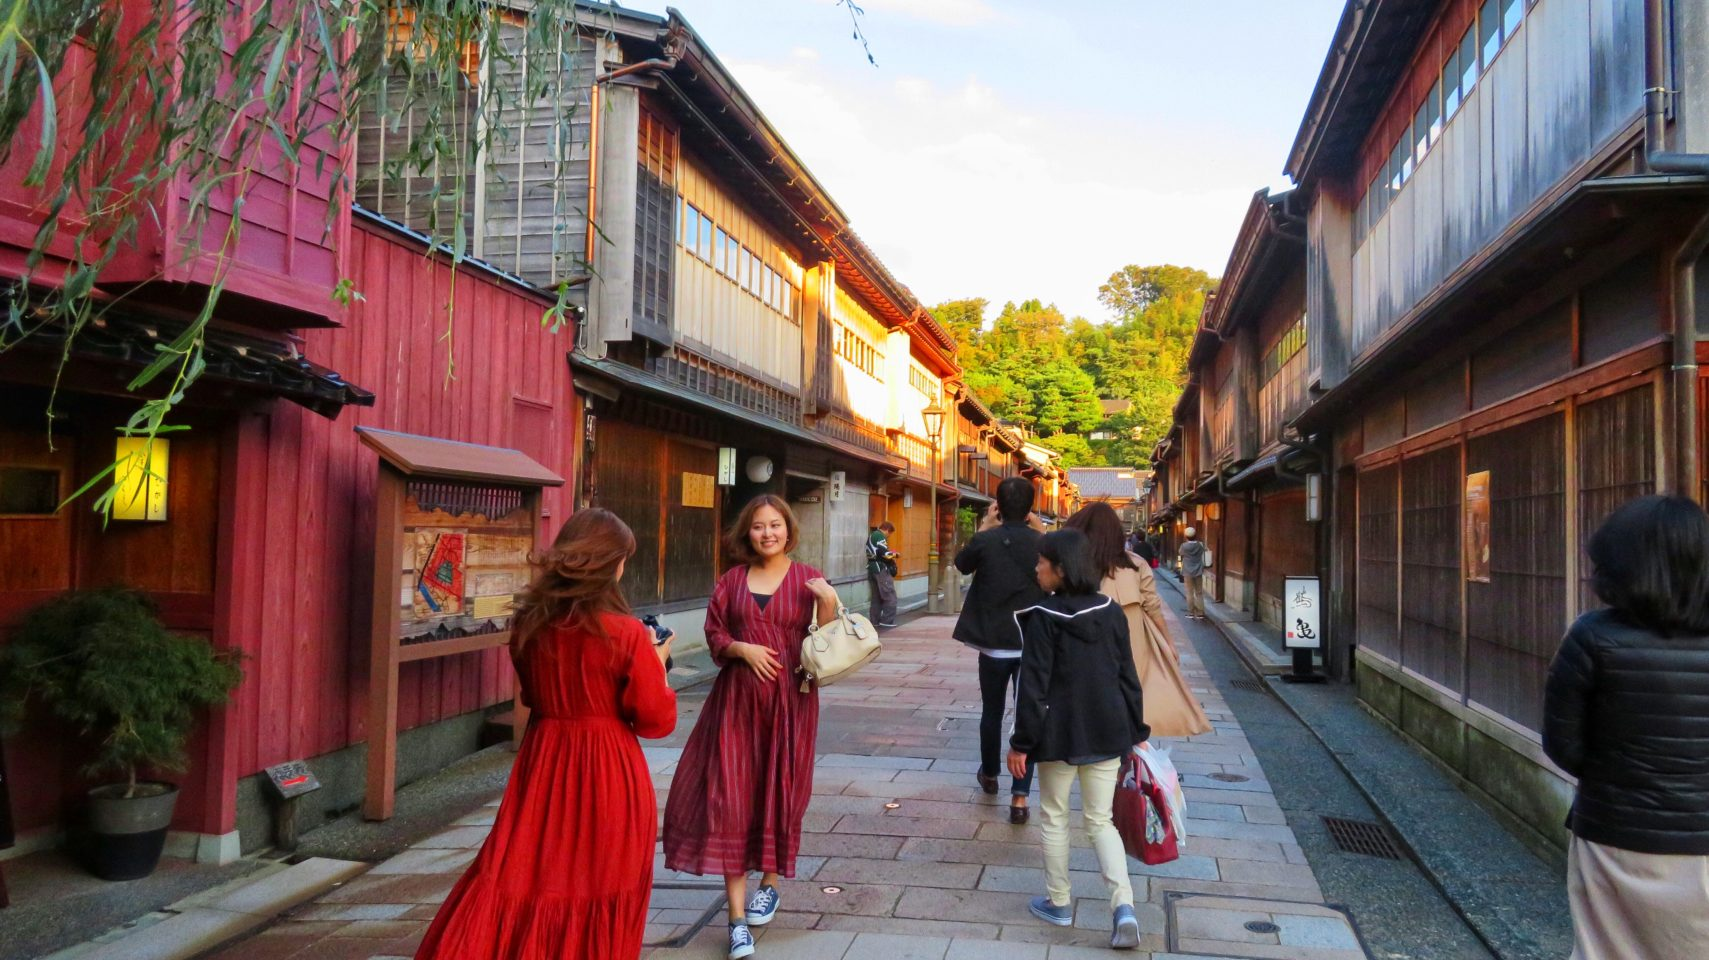 Japan Favorite Experiences ~ Strolling the well preserved Samurai and Geisha districts in Kanazawa